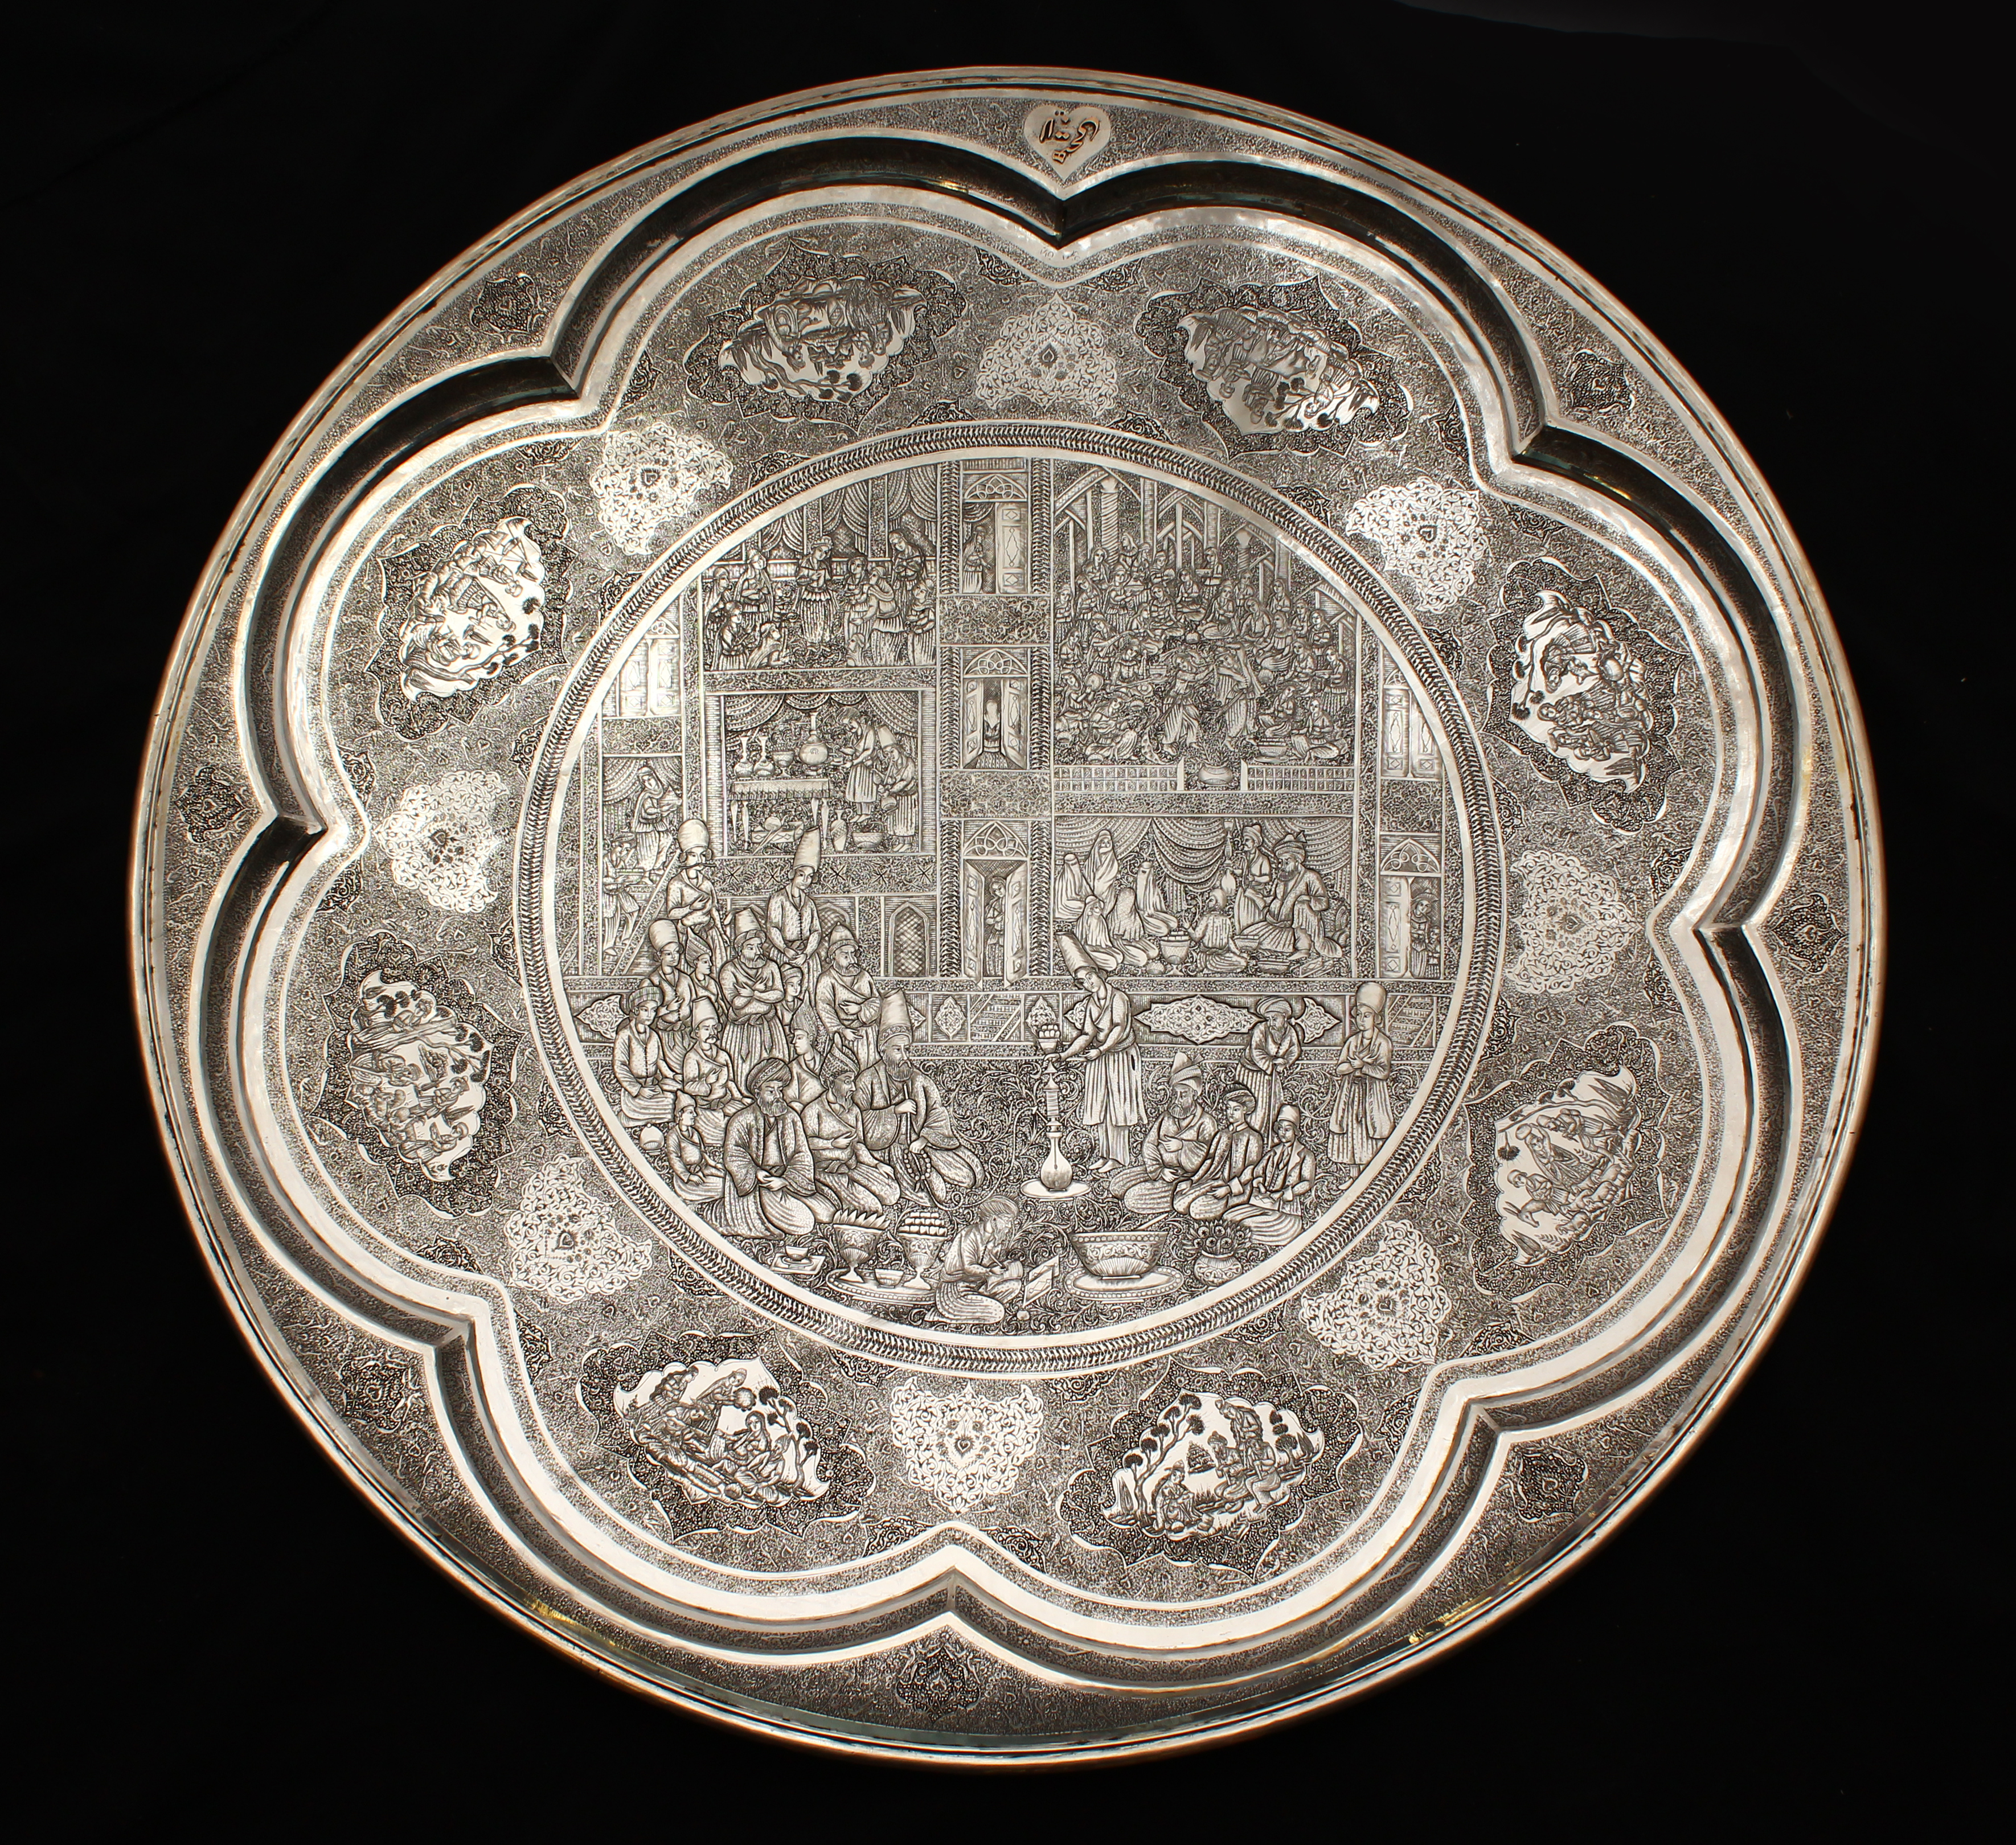 A superb large Persian solid silver circular plaque by Lahiji/Auctioneers and Valuers